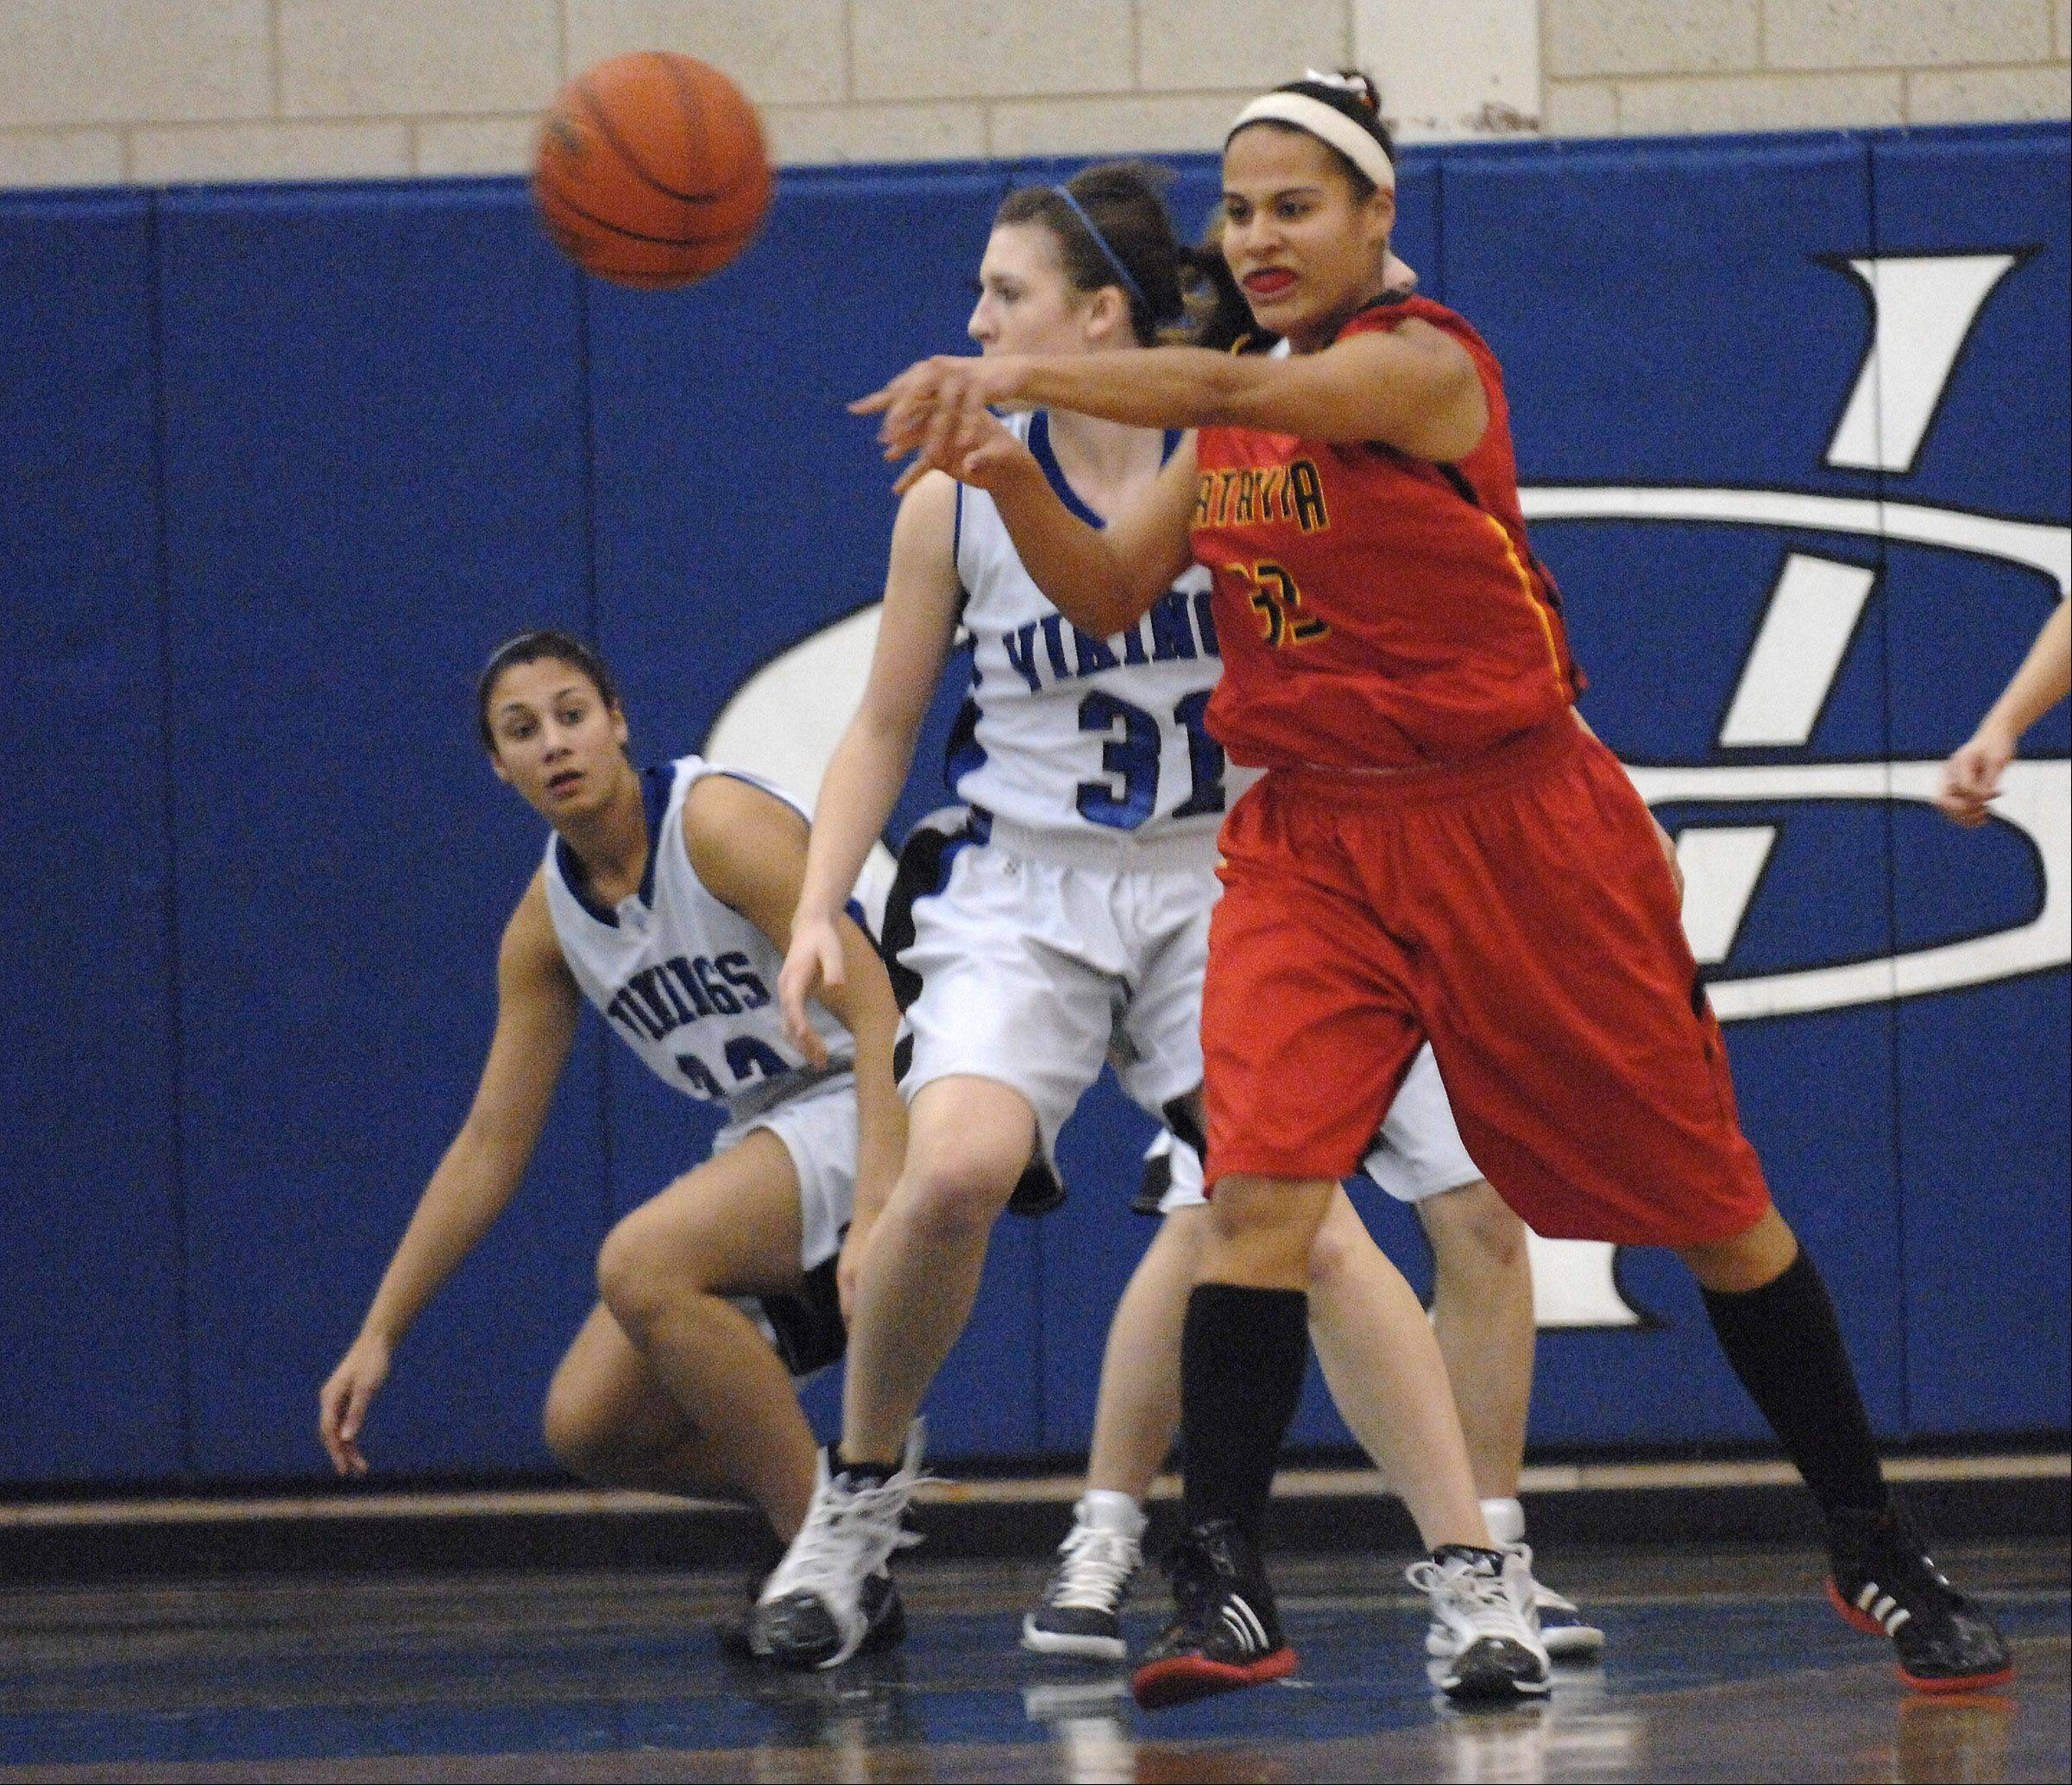 Images from the Batavia at Geneva girls basketball game on Wednesday, January 4, 2012.